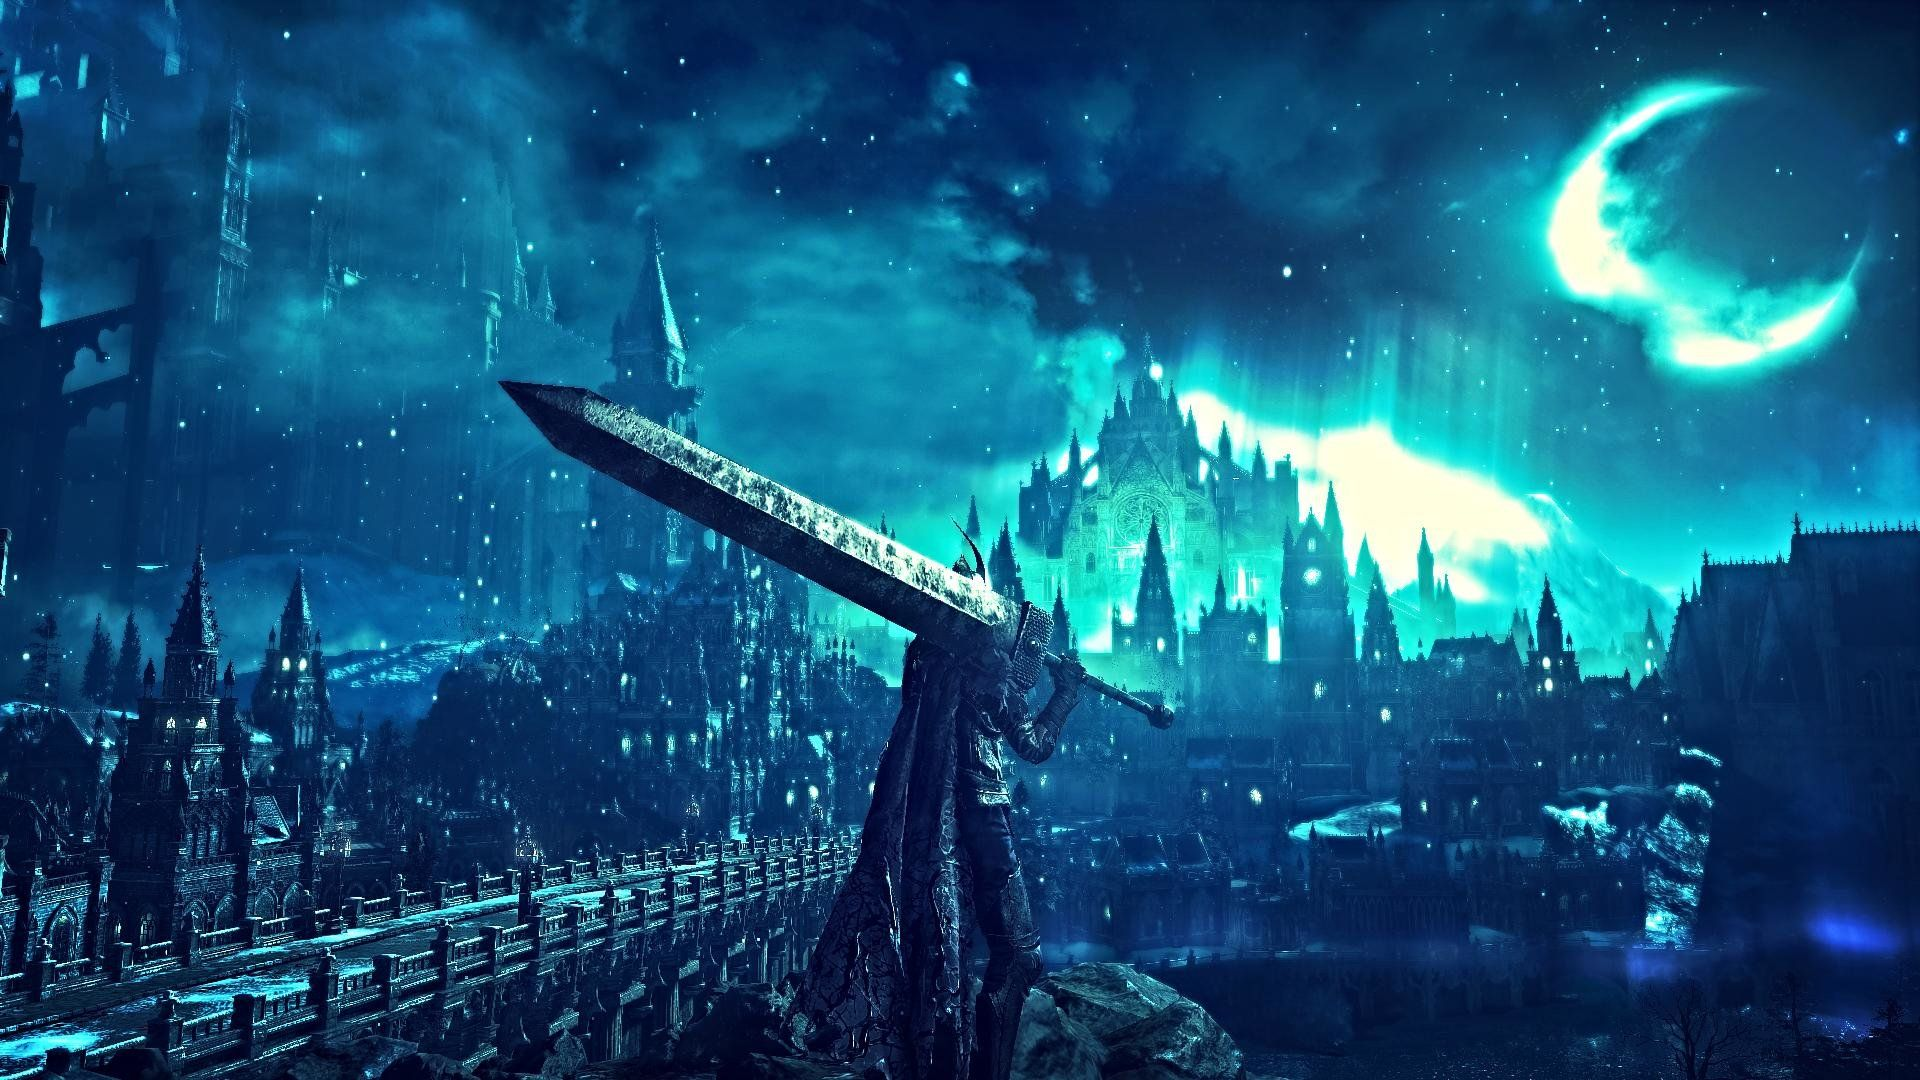 Dark Souls 3 Wallpaper 4k 42 Image Collections Of Wallpapers Dark Souls Imagem De Fundo De Computador Papel De Parede De Fundo